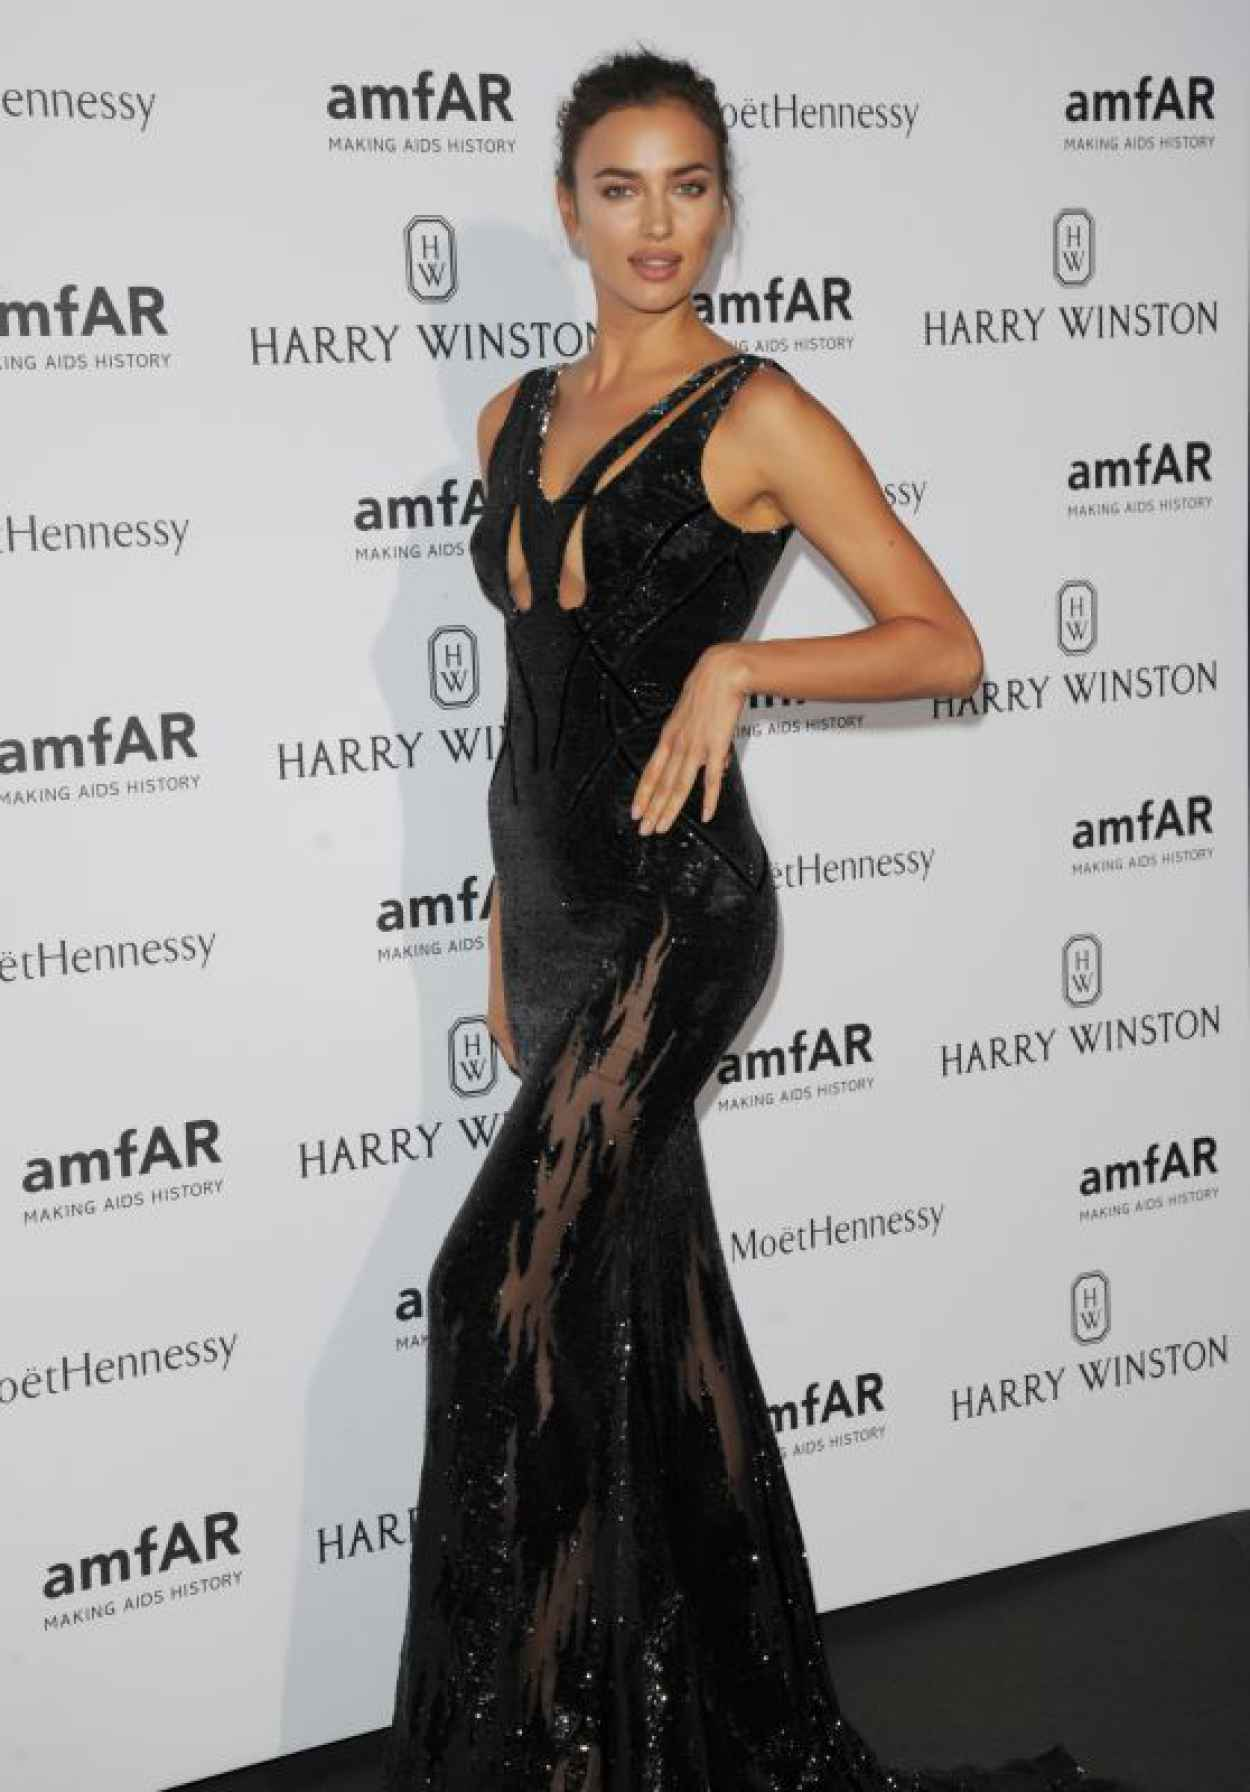 Irina Shayk on Red Carpet - amfAR Dinner in Paris, July 2015-1